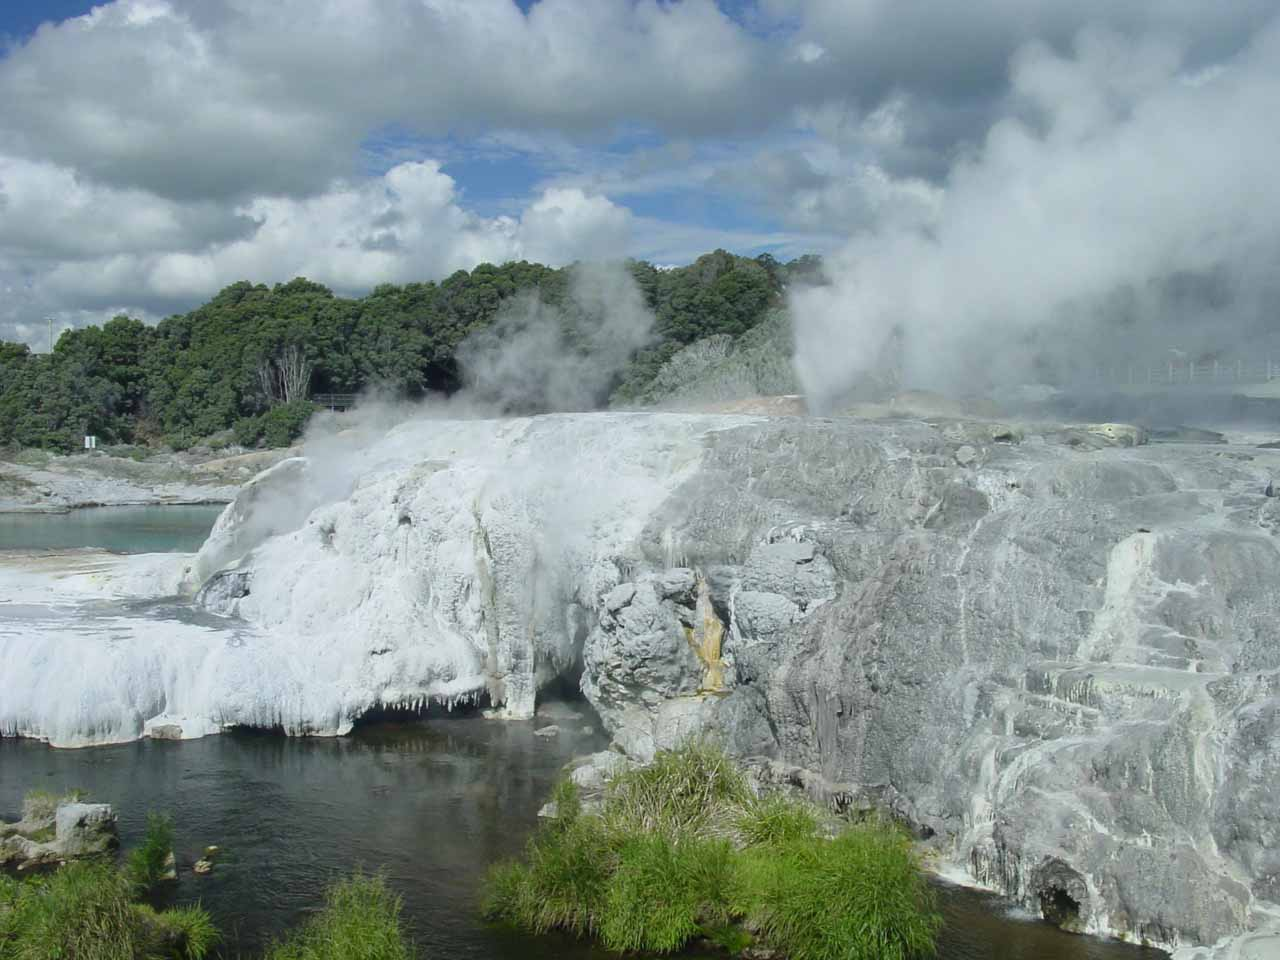 Inside Rotorua was the geothermal wonderland and Maori cultural centre of Te Whakarewarewa, which featured the Pohutu and Prince of Wales Geysers shown here